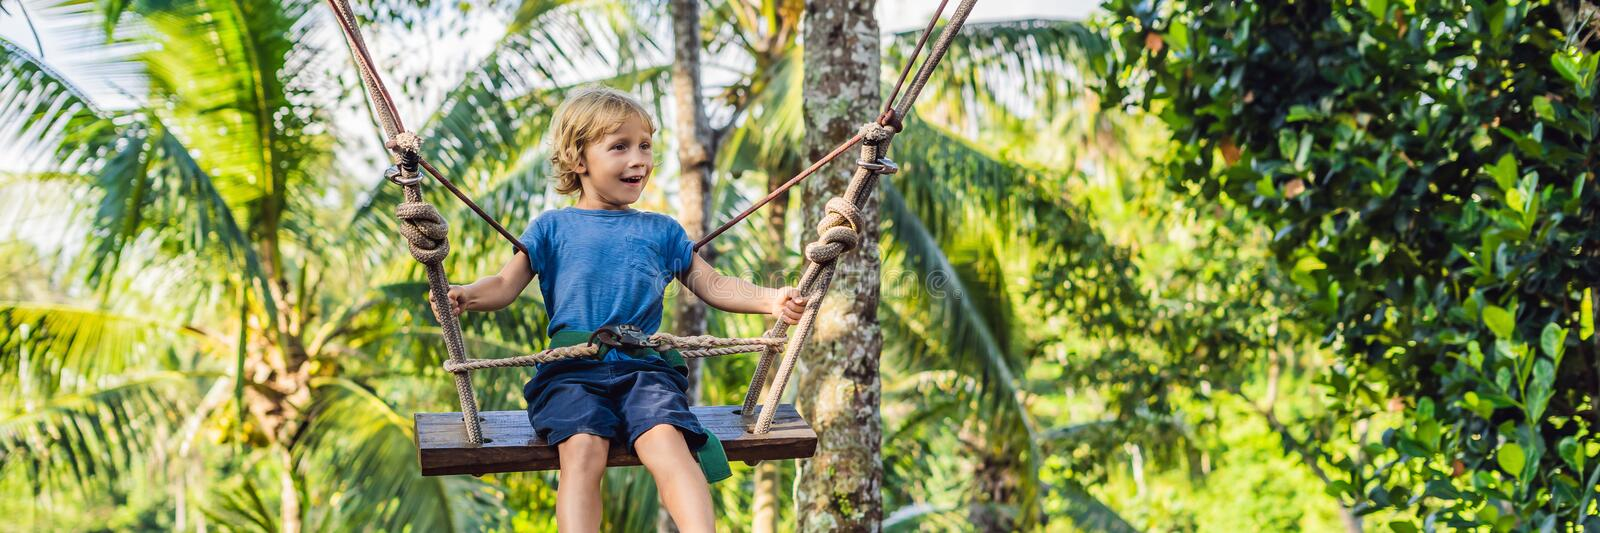 A boy on a swing over the jungle, Bali BANNER, long format. A boy on a swing over the jungle, Bali. BANNER, long format stock photo